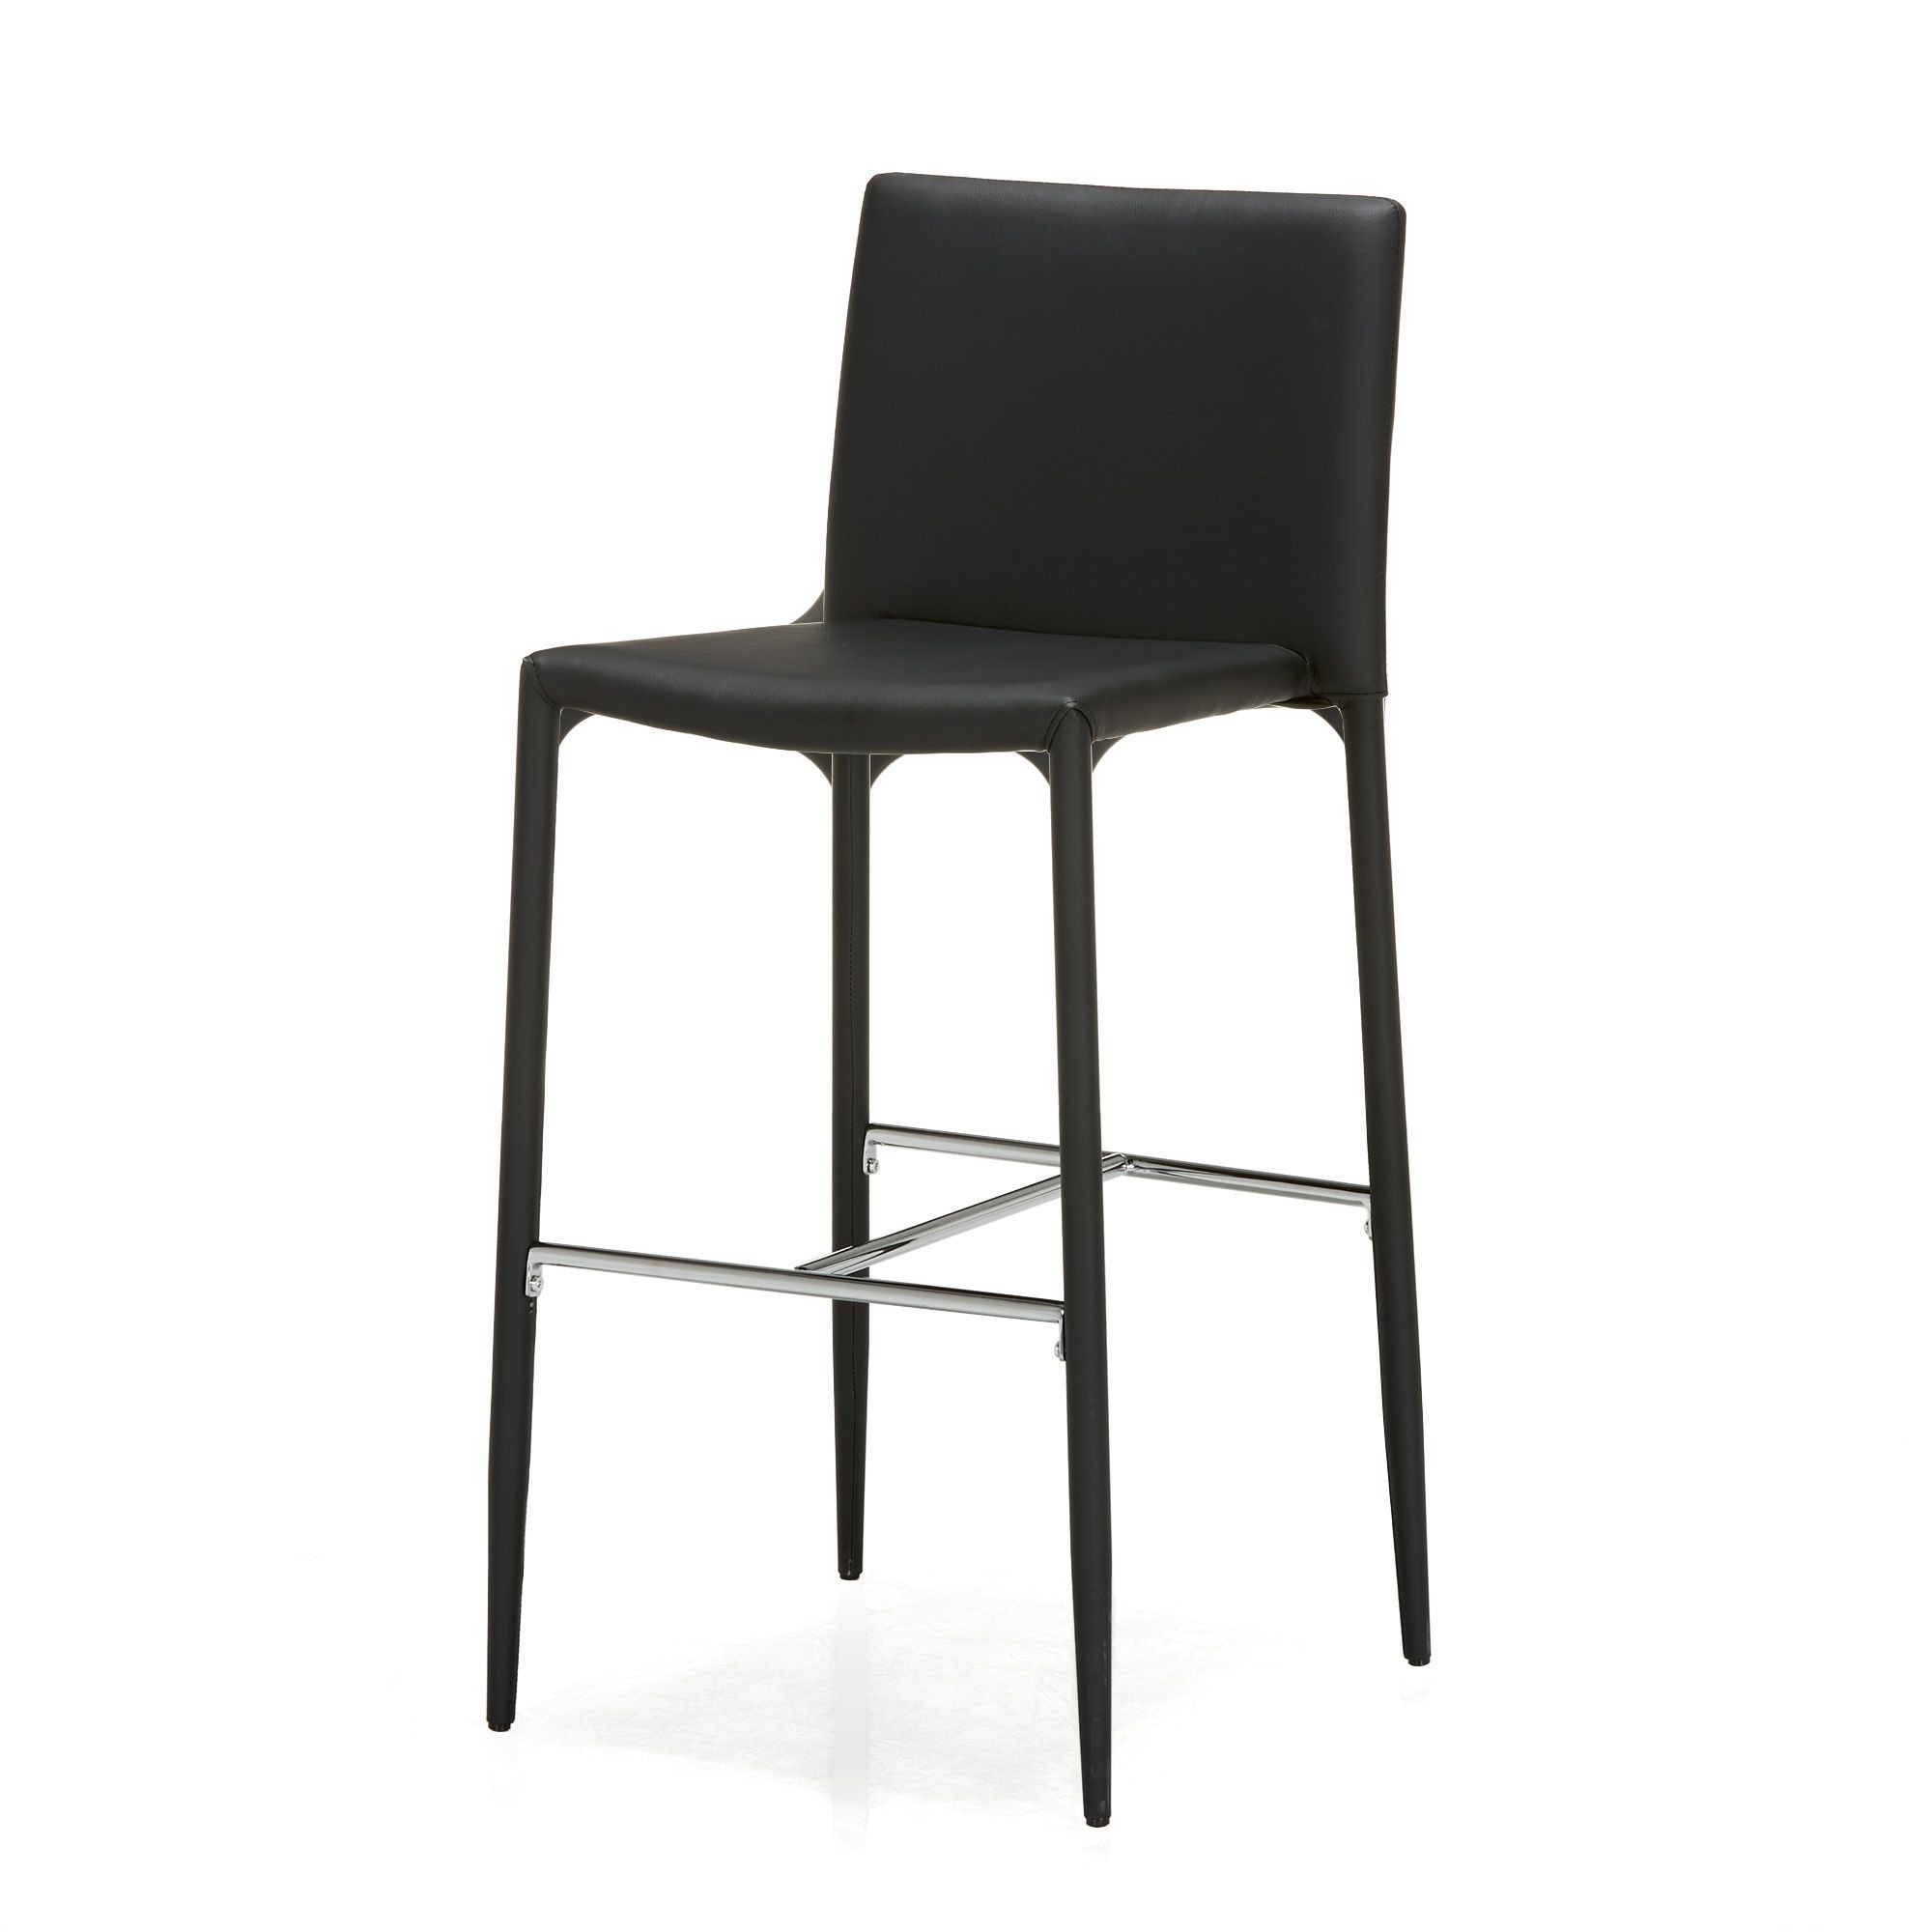 tabouret bar cuisine alinea cuisine id es de. Black Bedroom Furniture Sets. Home Design Ideas